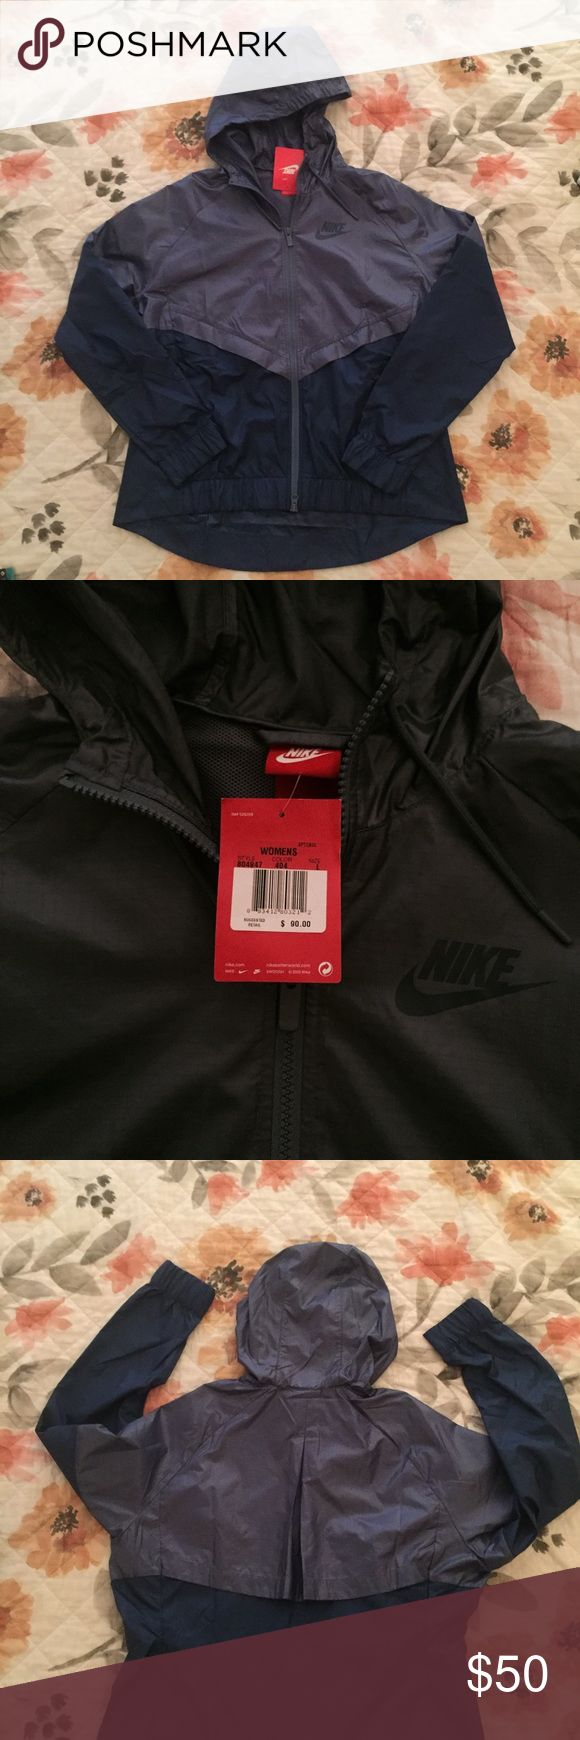 NWT Nike Colorblocked Windrunner Jacket NWT Nike Jacket. Versatile and ventilated, this jacket features a multi-panel scuba hood that zips up to the chin and ribbed cuffs and hem for that snug fit. Mesh lining and vented in the back, this all-conditions jacket maintains excellent airflow no matter where your day takes you. Size Large. Nike Jackets & Coats